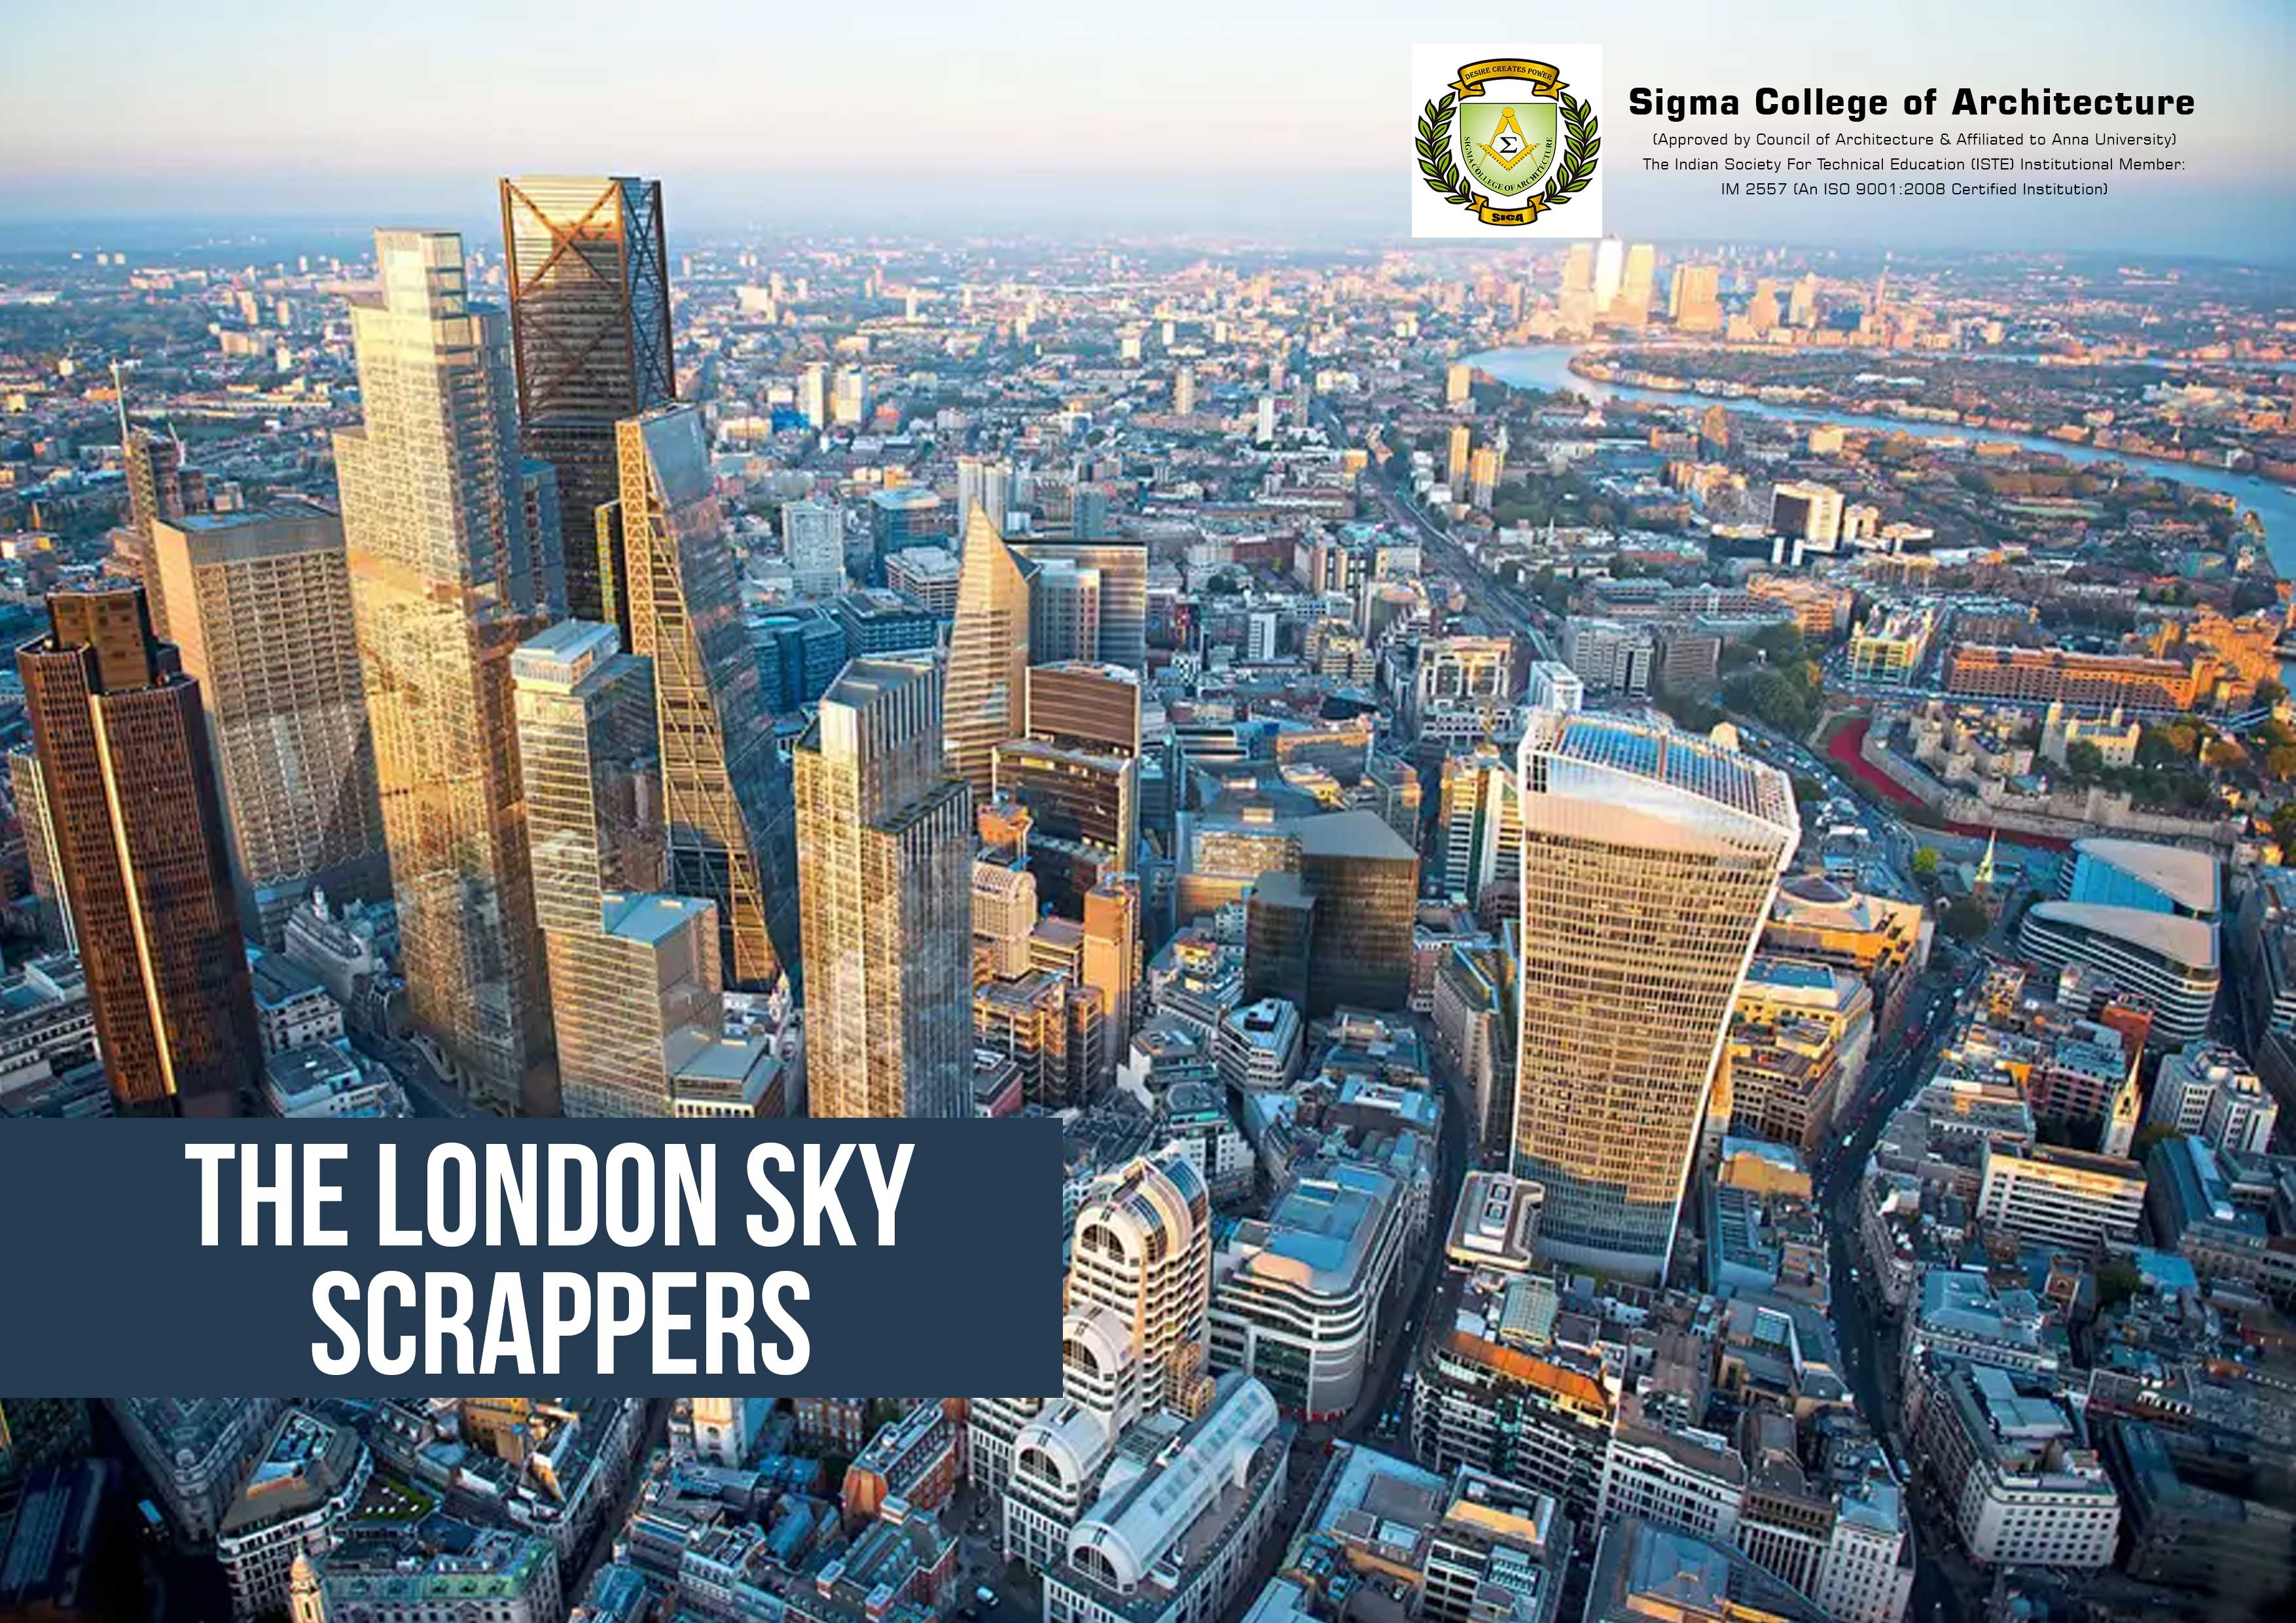 The London Sky Scrappers